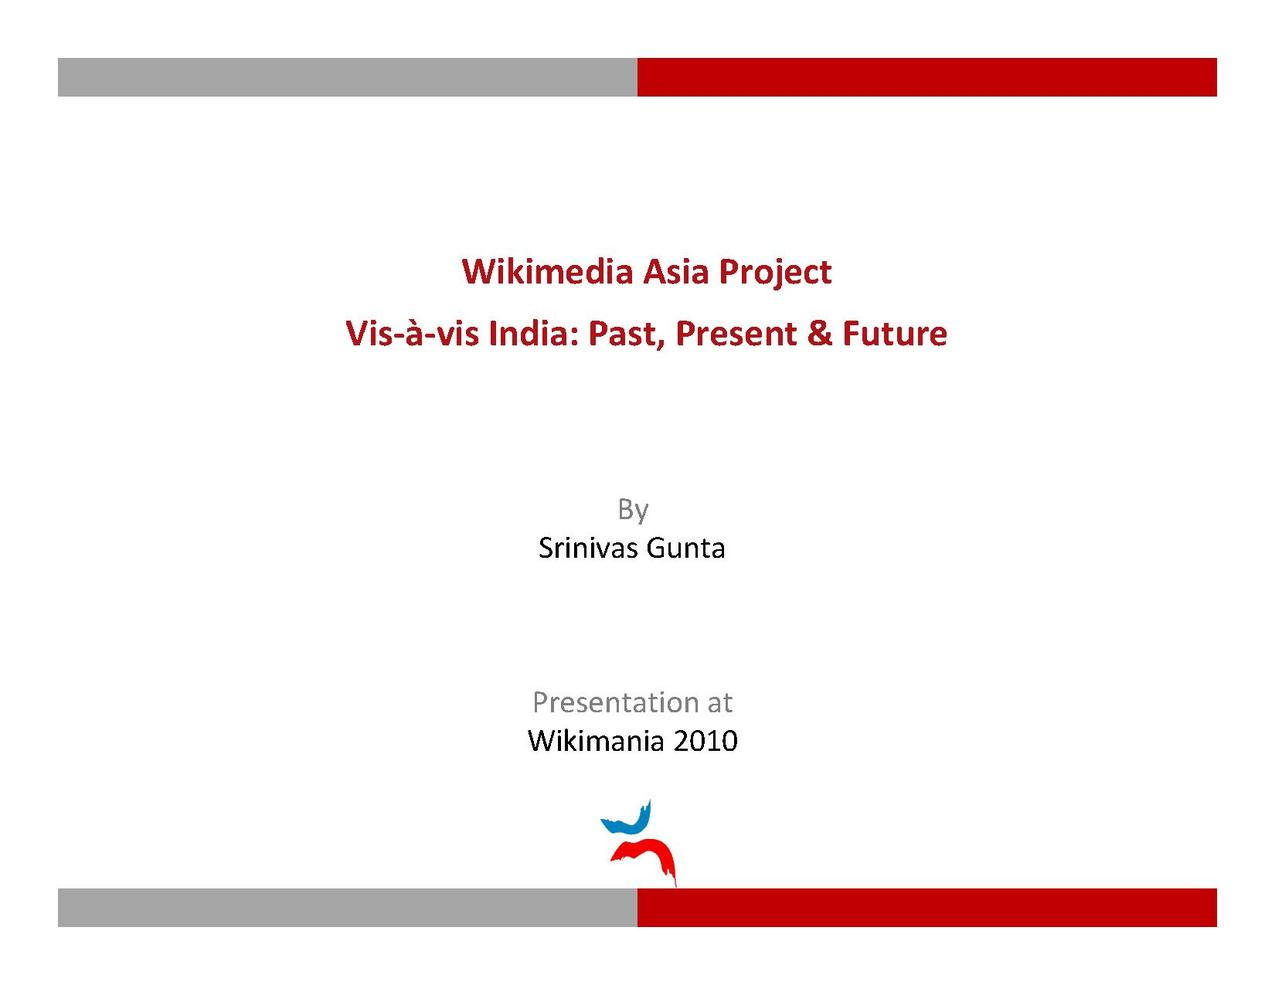 These were the slides Srinivas Gunta used at the presentation